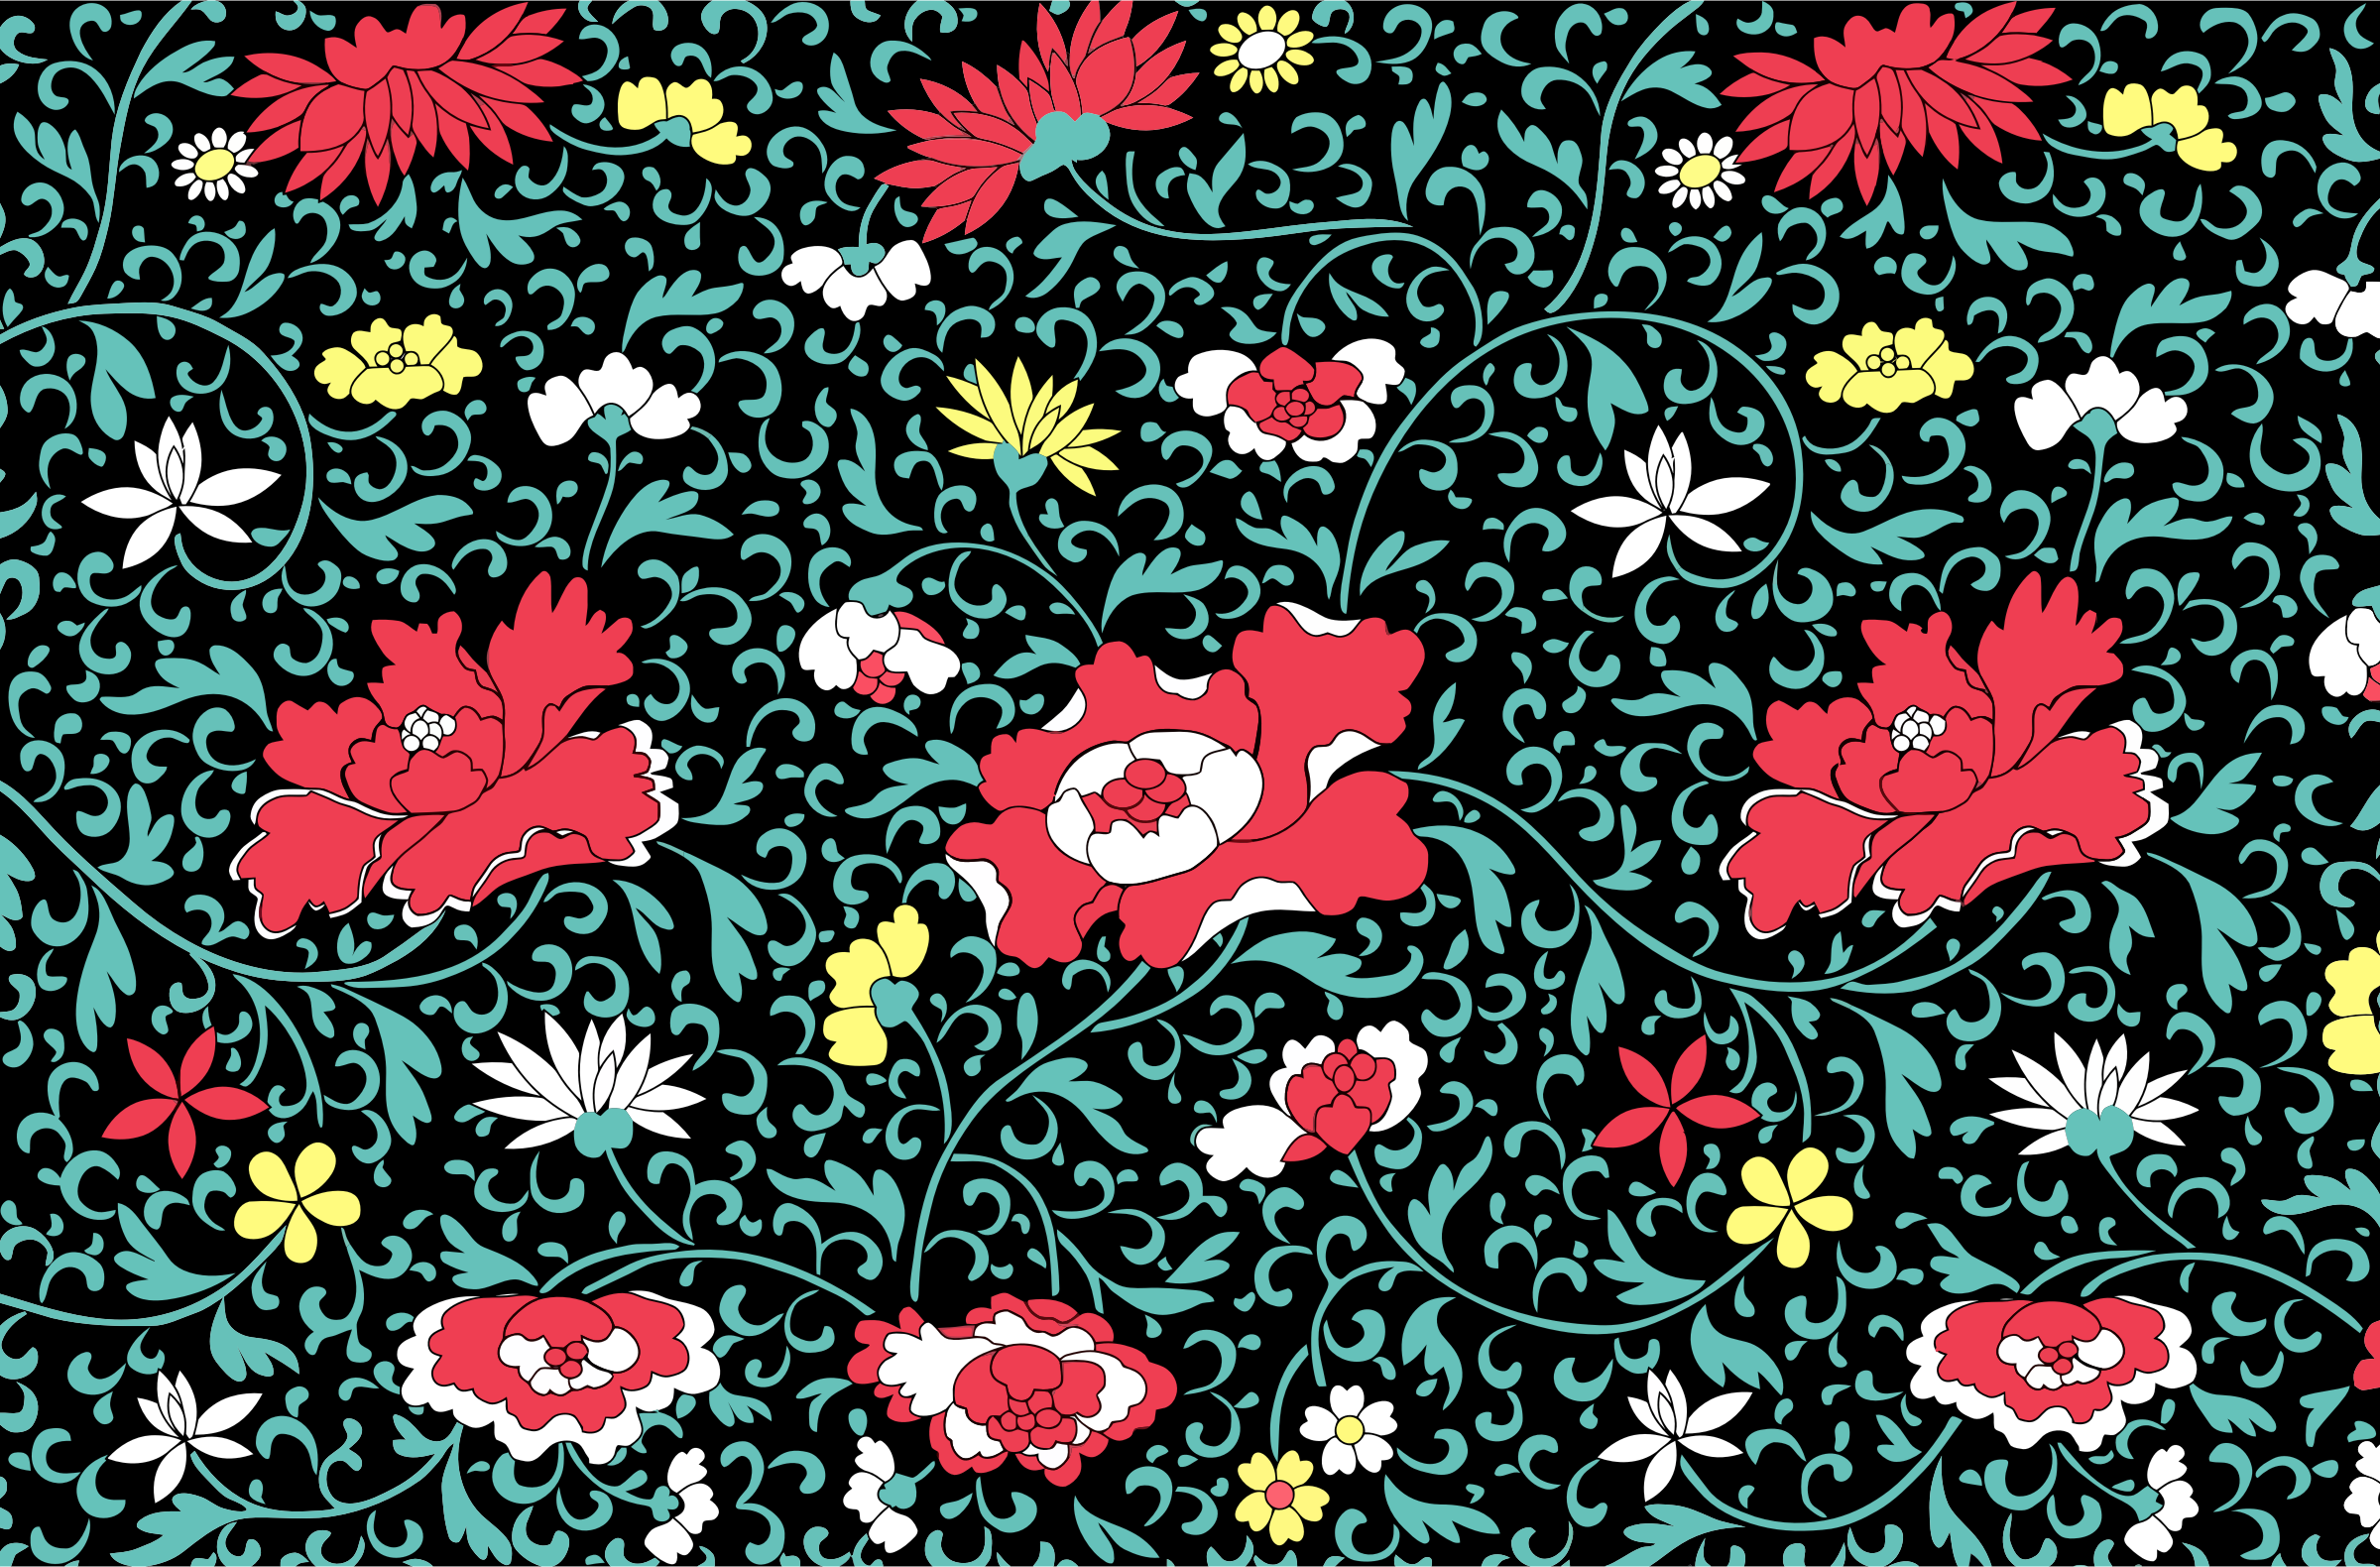 Vintage Floral Wallpaper by GDJ